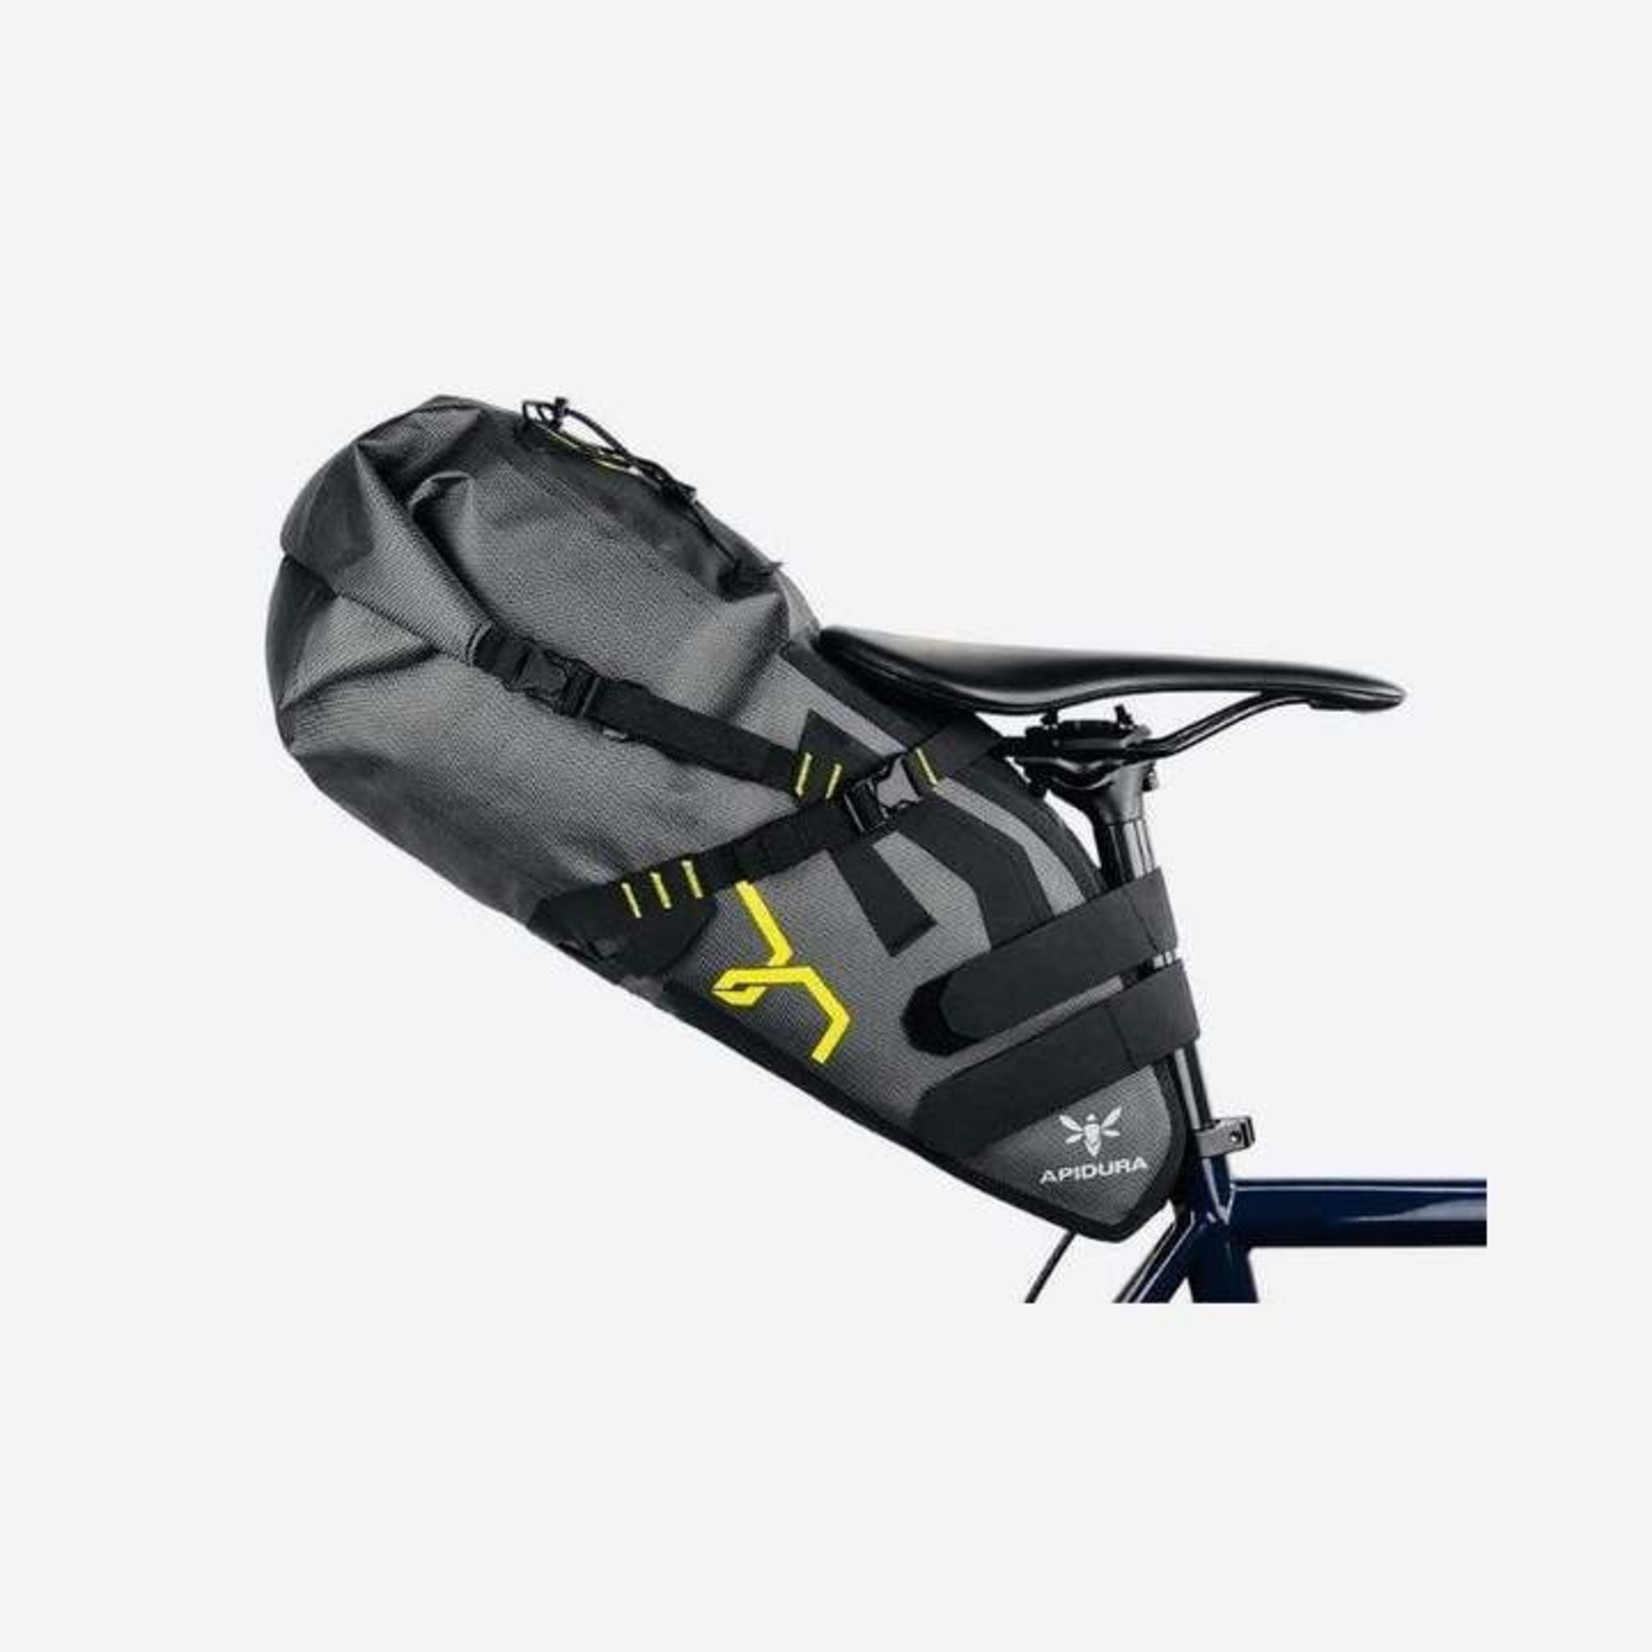 Apidura Apidura Expedition 17L Saddle Pack